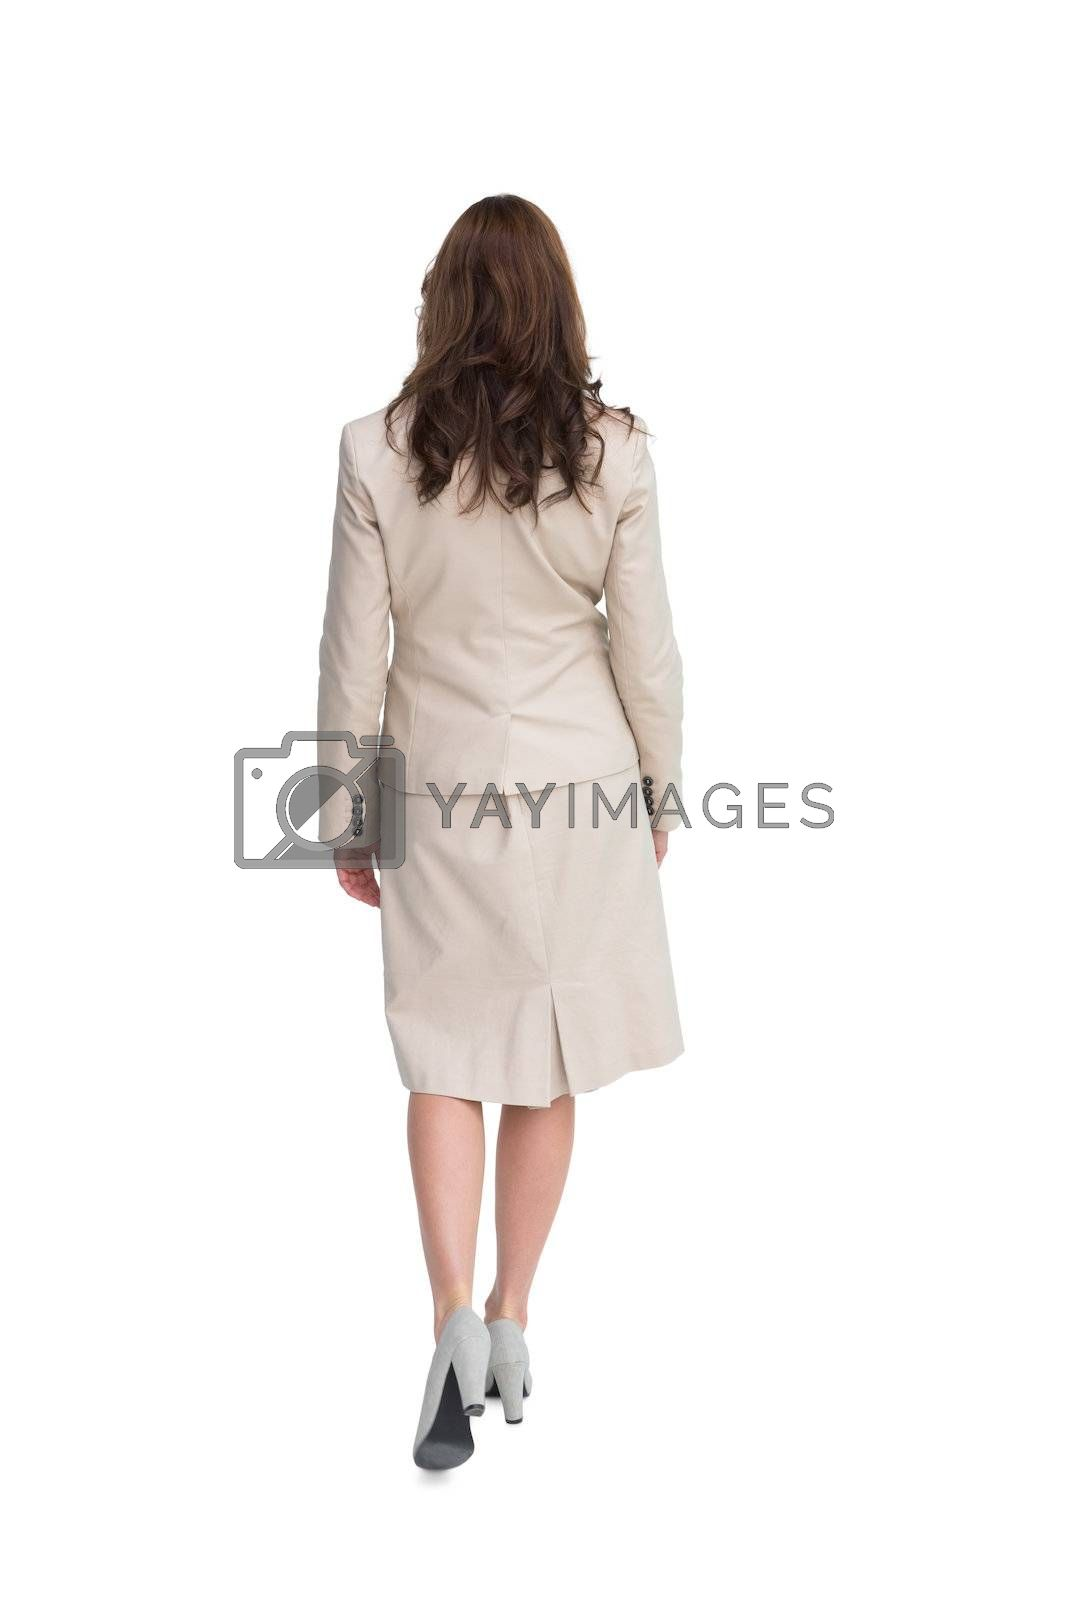 Classy businesswoman walking away from camera by Wavebreakmedia